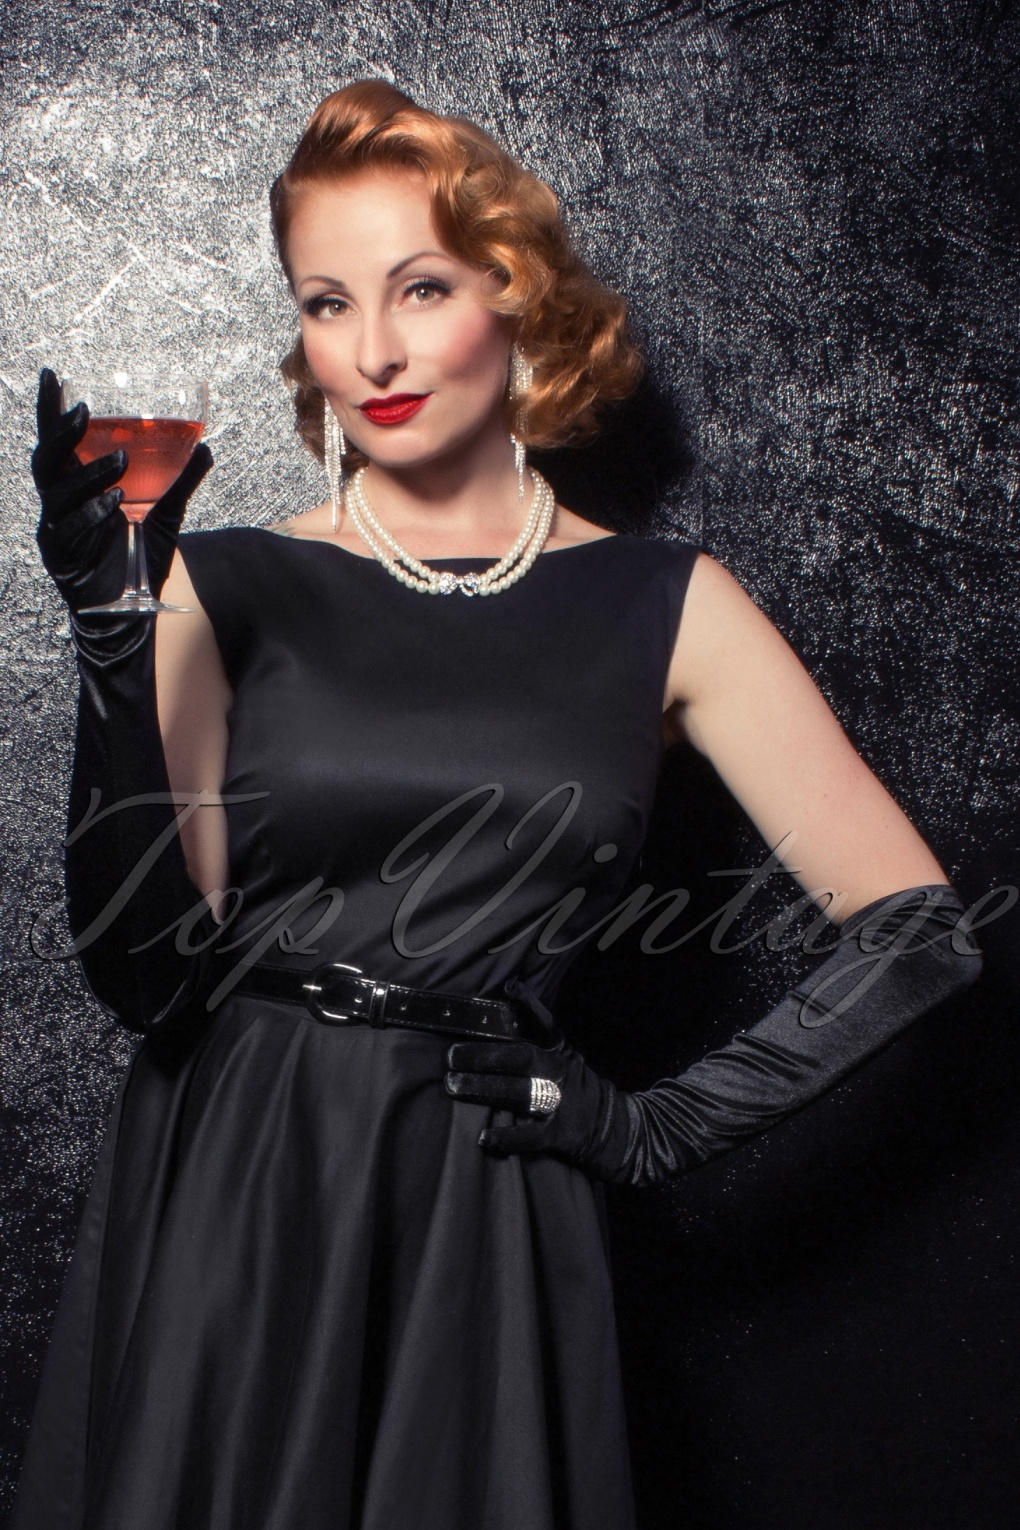 Vintage Style Gloves- Long, Wrist, Evening, Day, Leather, Lace The Satin Chic Gloves in Black £13.03 AT vintagedancer.com